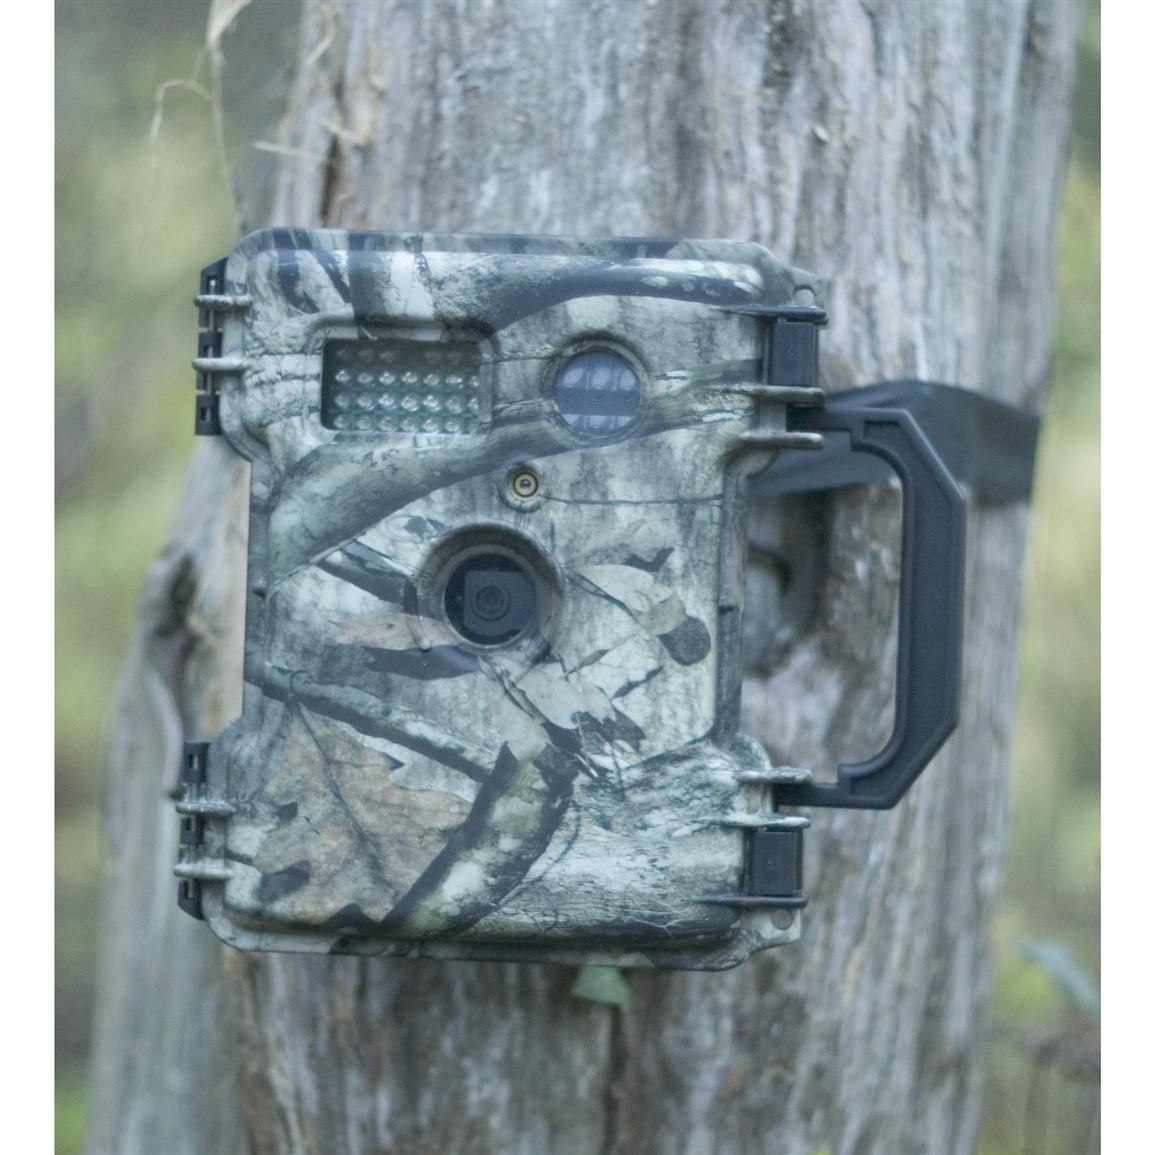 Recon Outdoors Extreme 3.0 Megapixel Scouting Camera